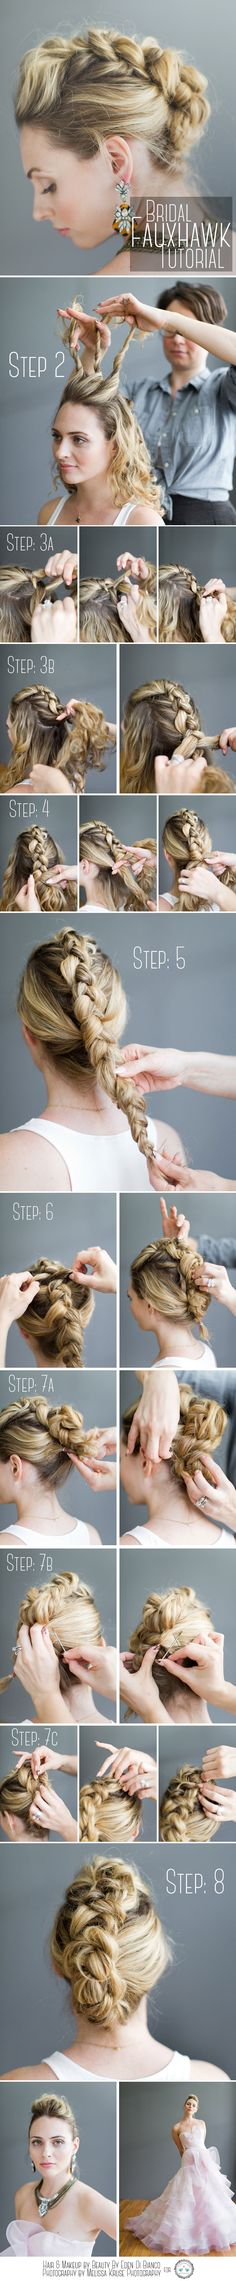 Bridal Fauxhawk Braid Tutorial | Wedding Hair Faux Hawk | http://storyboardwedding.com/wedding-hair-bridal-faux-hawk-tutorial/